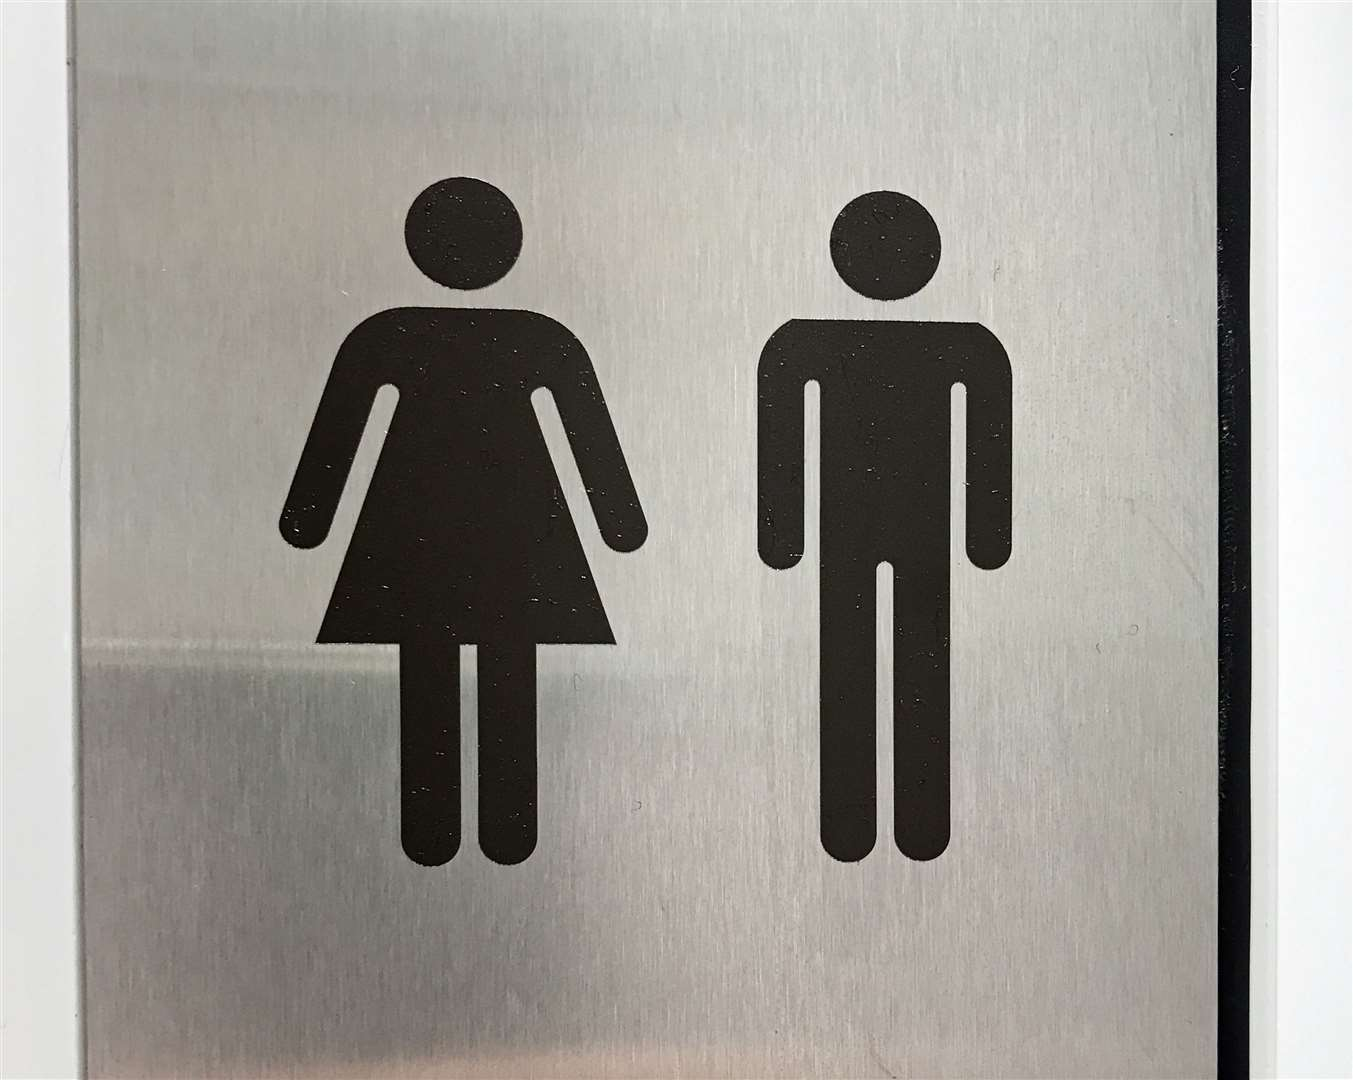 Signage for toilets (Martin Keene/PA)